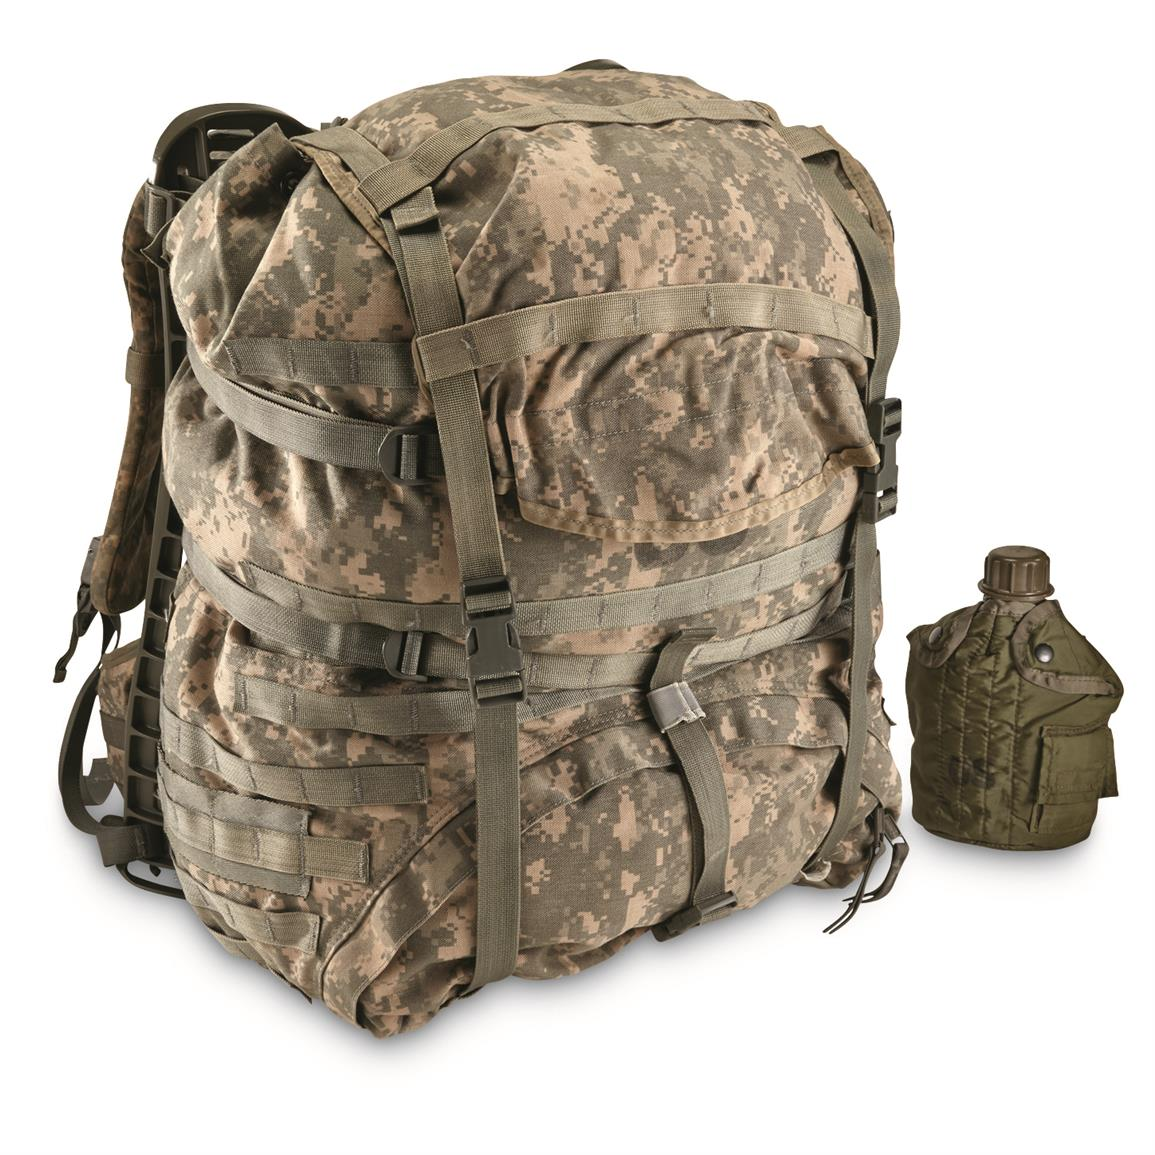 U.S. Military Surplus Field Pack with Frame, Used